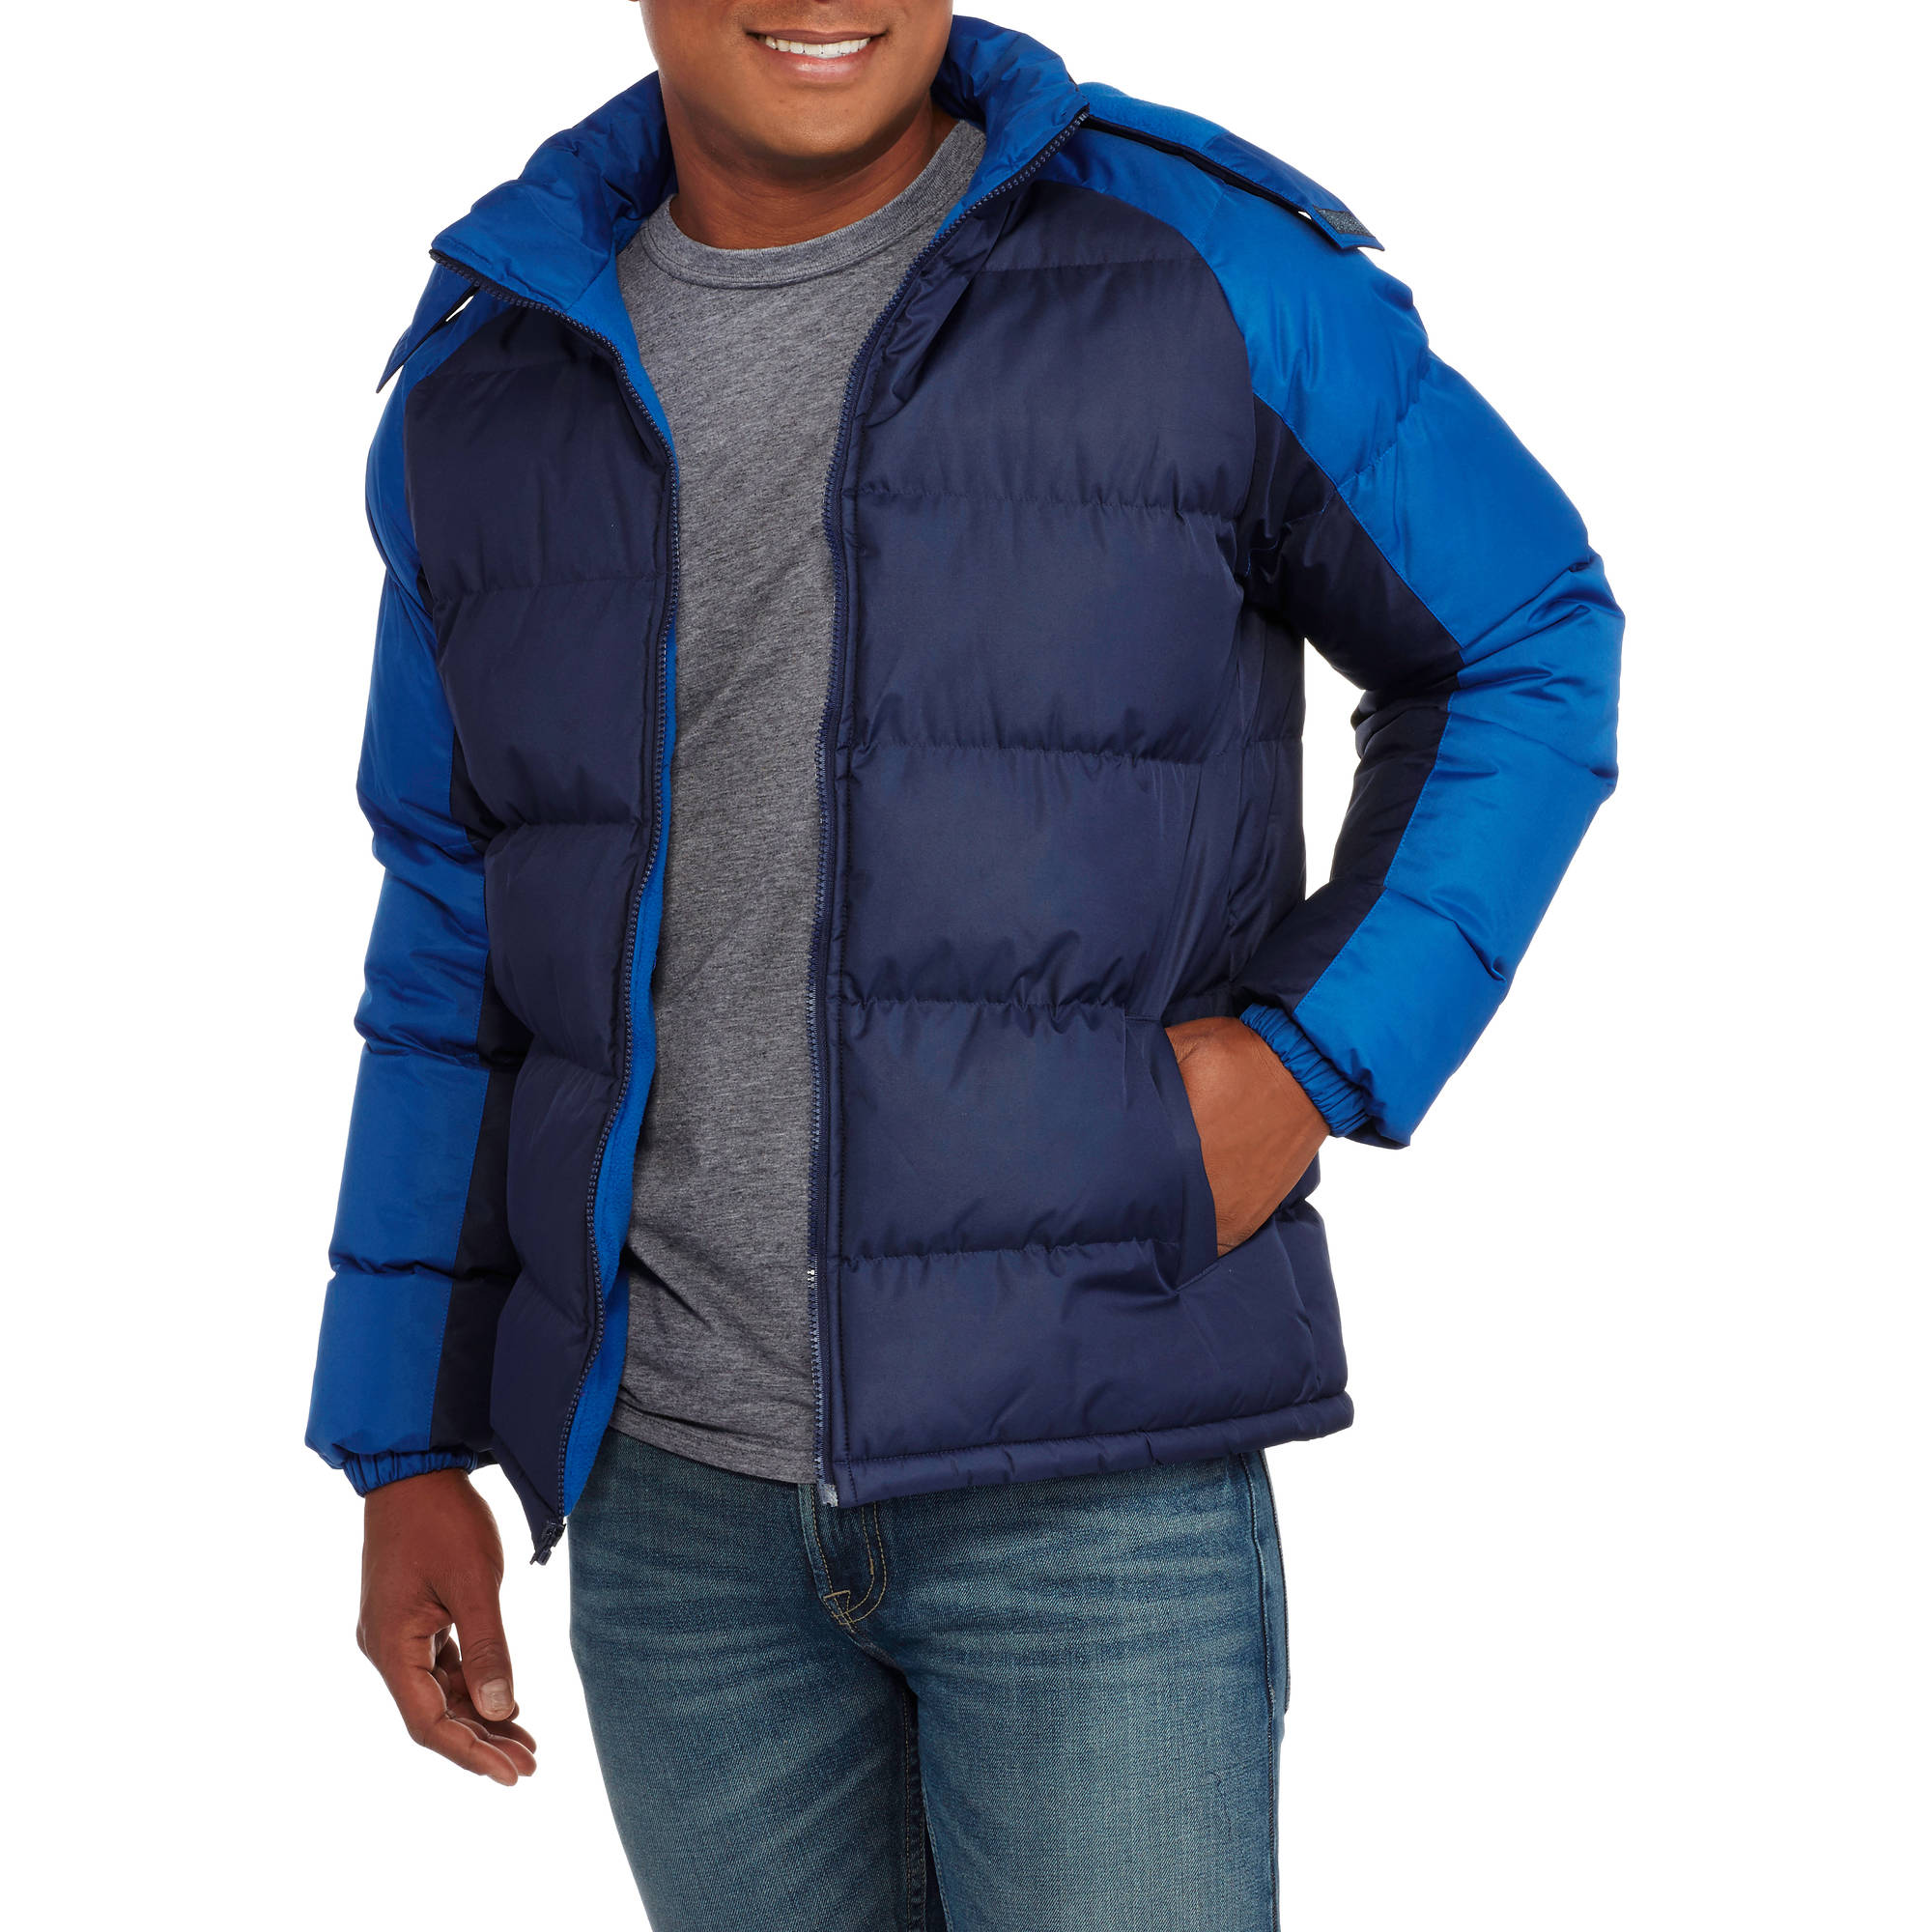 Climate Concepts Men's Fleece Lined Bubble Jacket